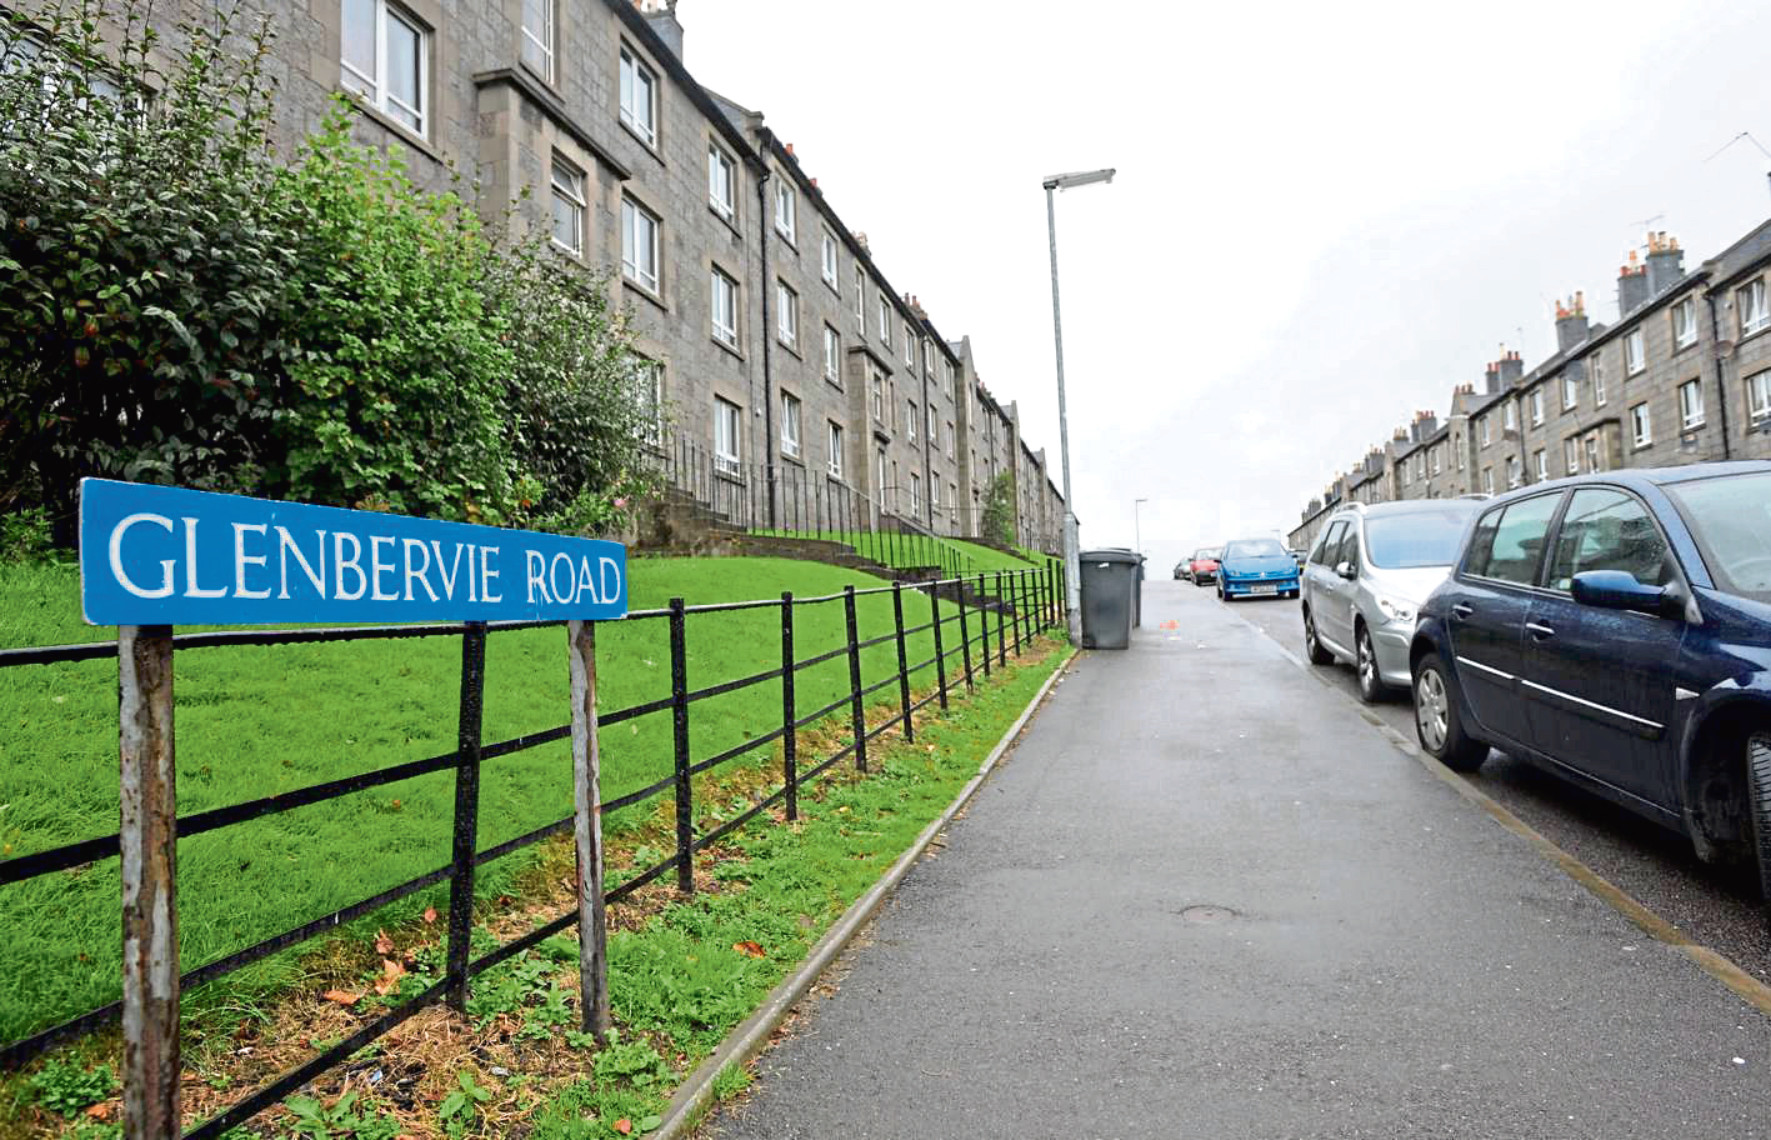 The incident took place on Glenbervie Road in Torry